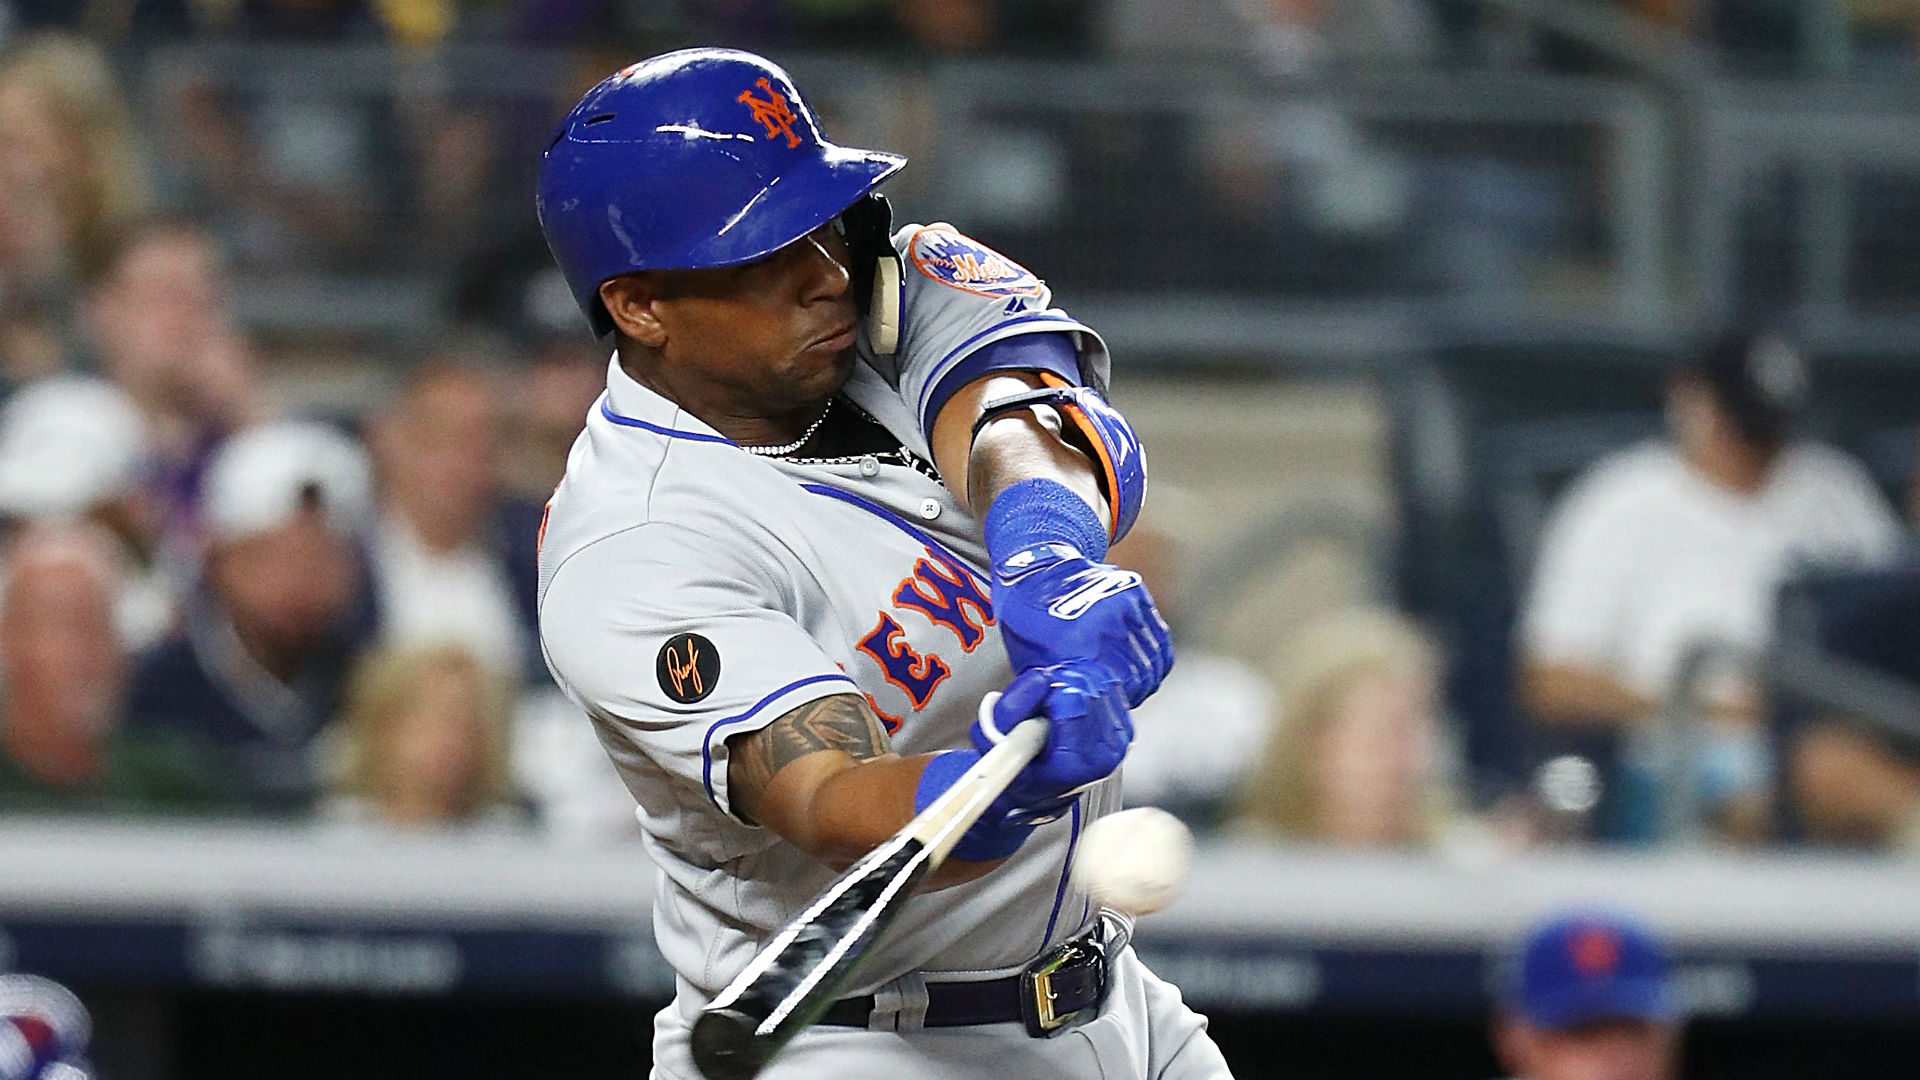 Mets' Cespedes may need surgery